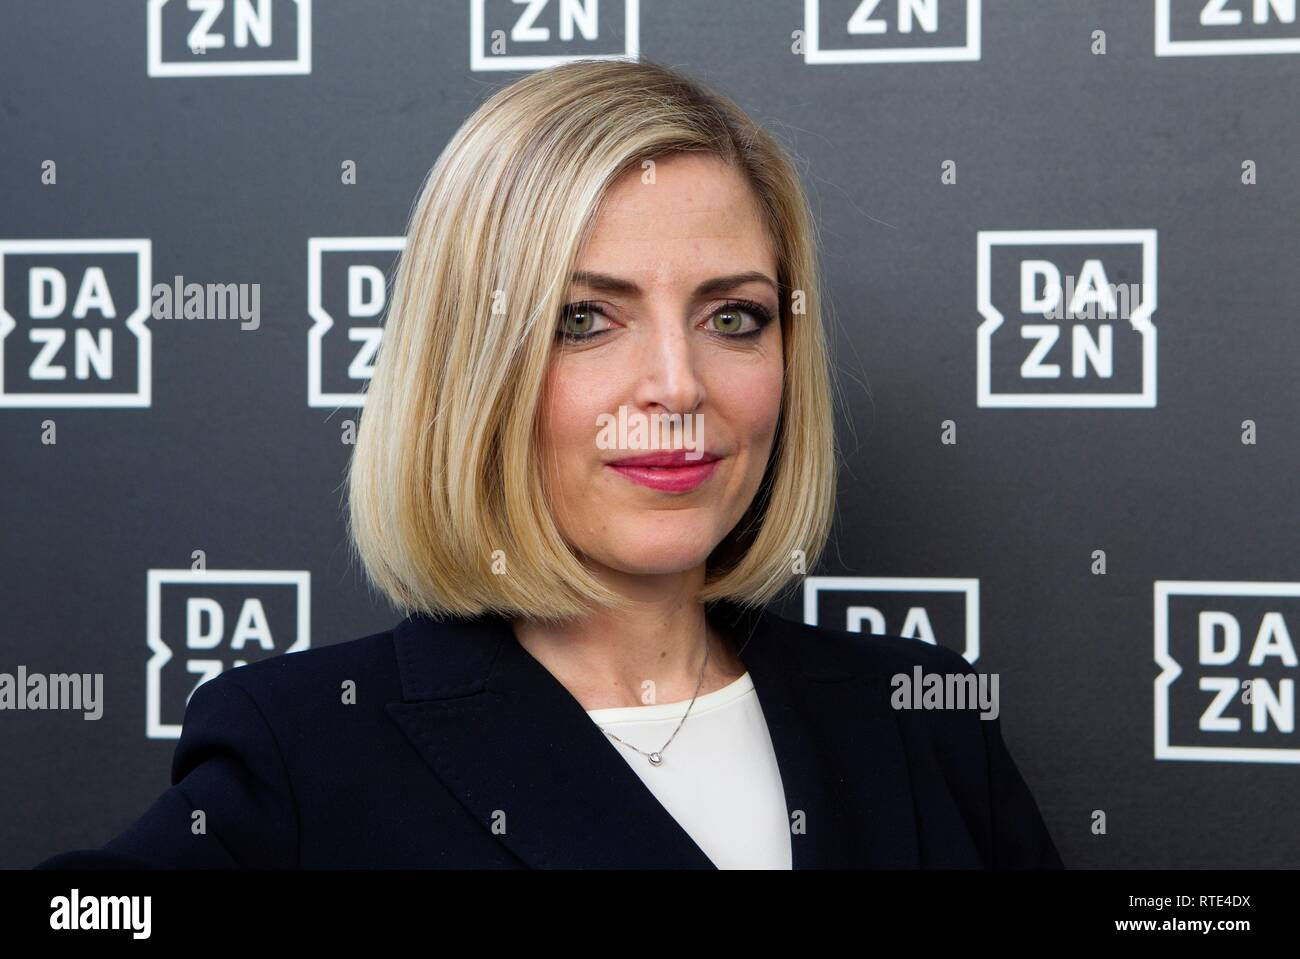 DAZN Executive Vice President for Southern and Eastern Europe